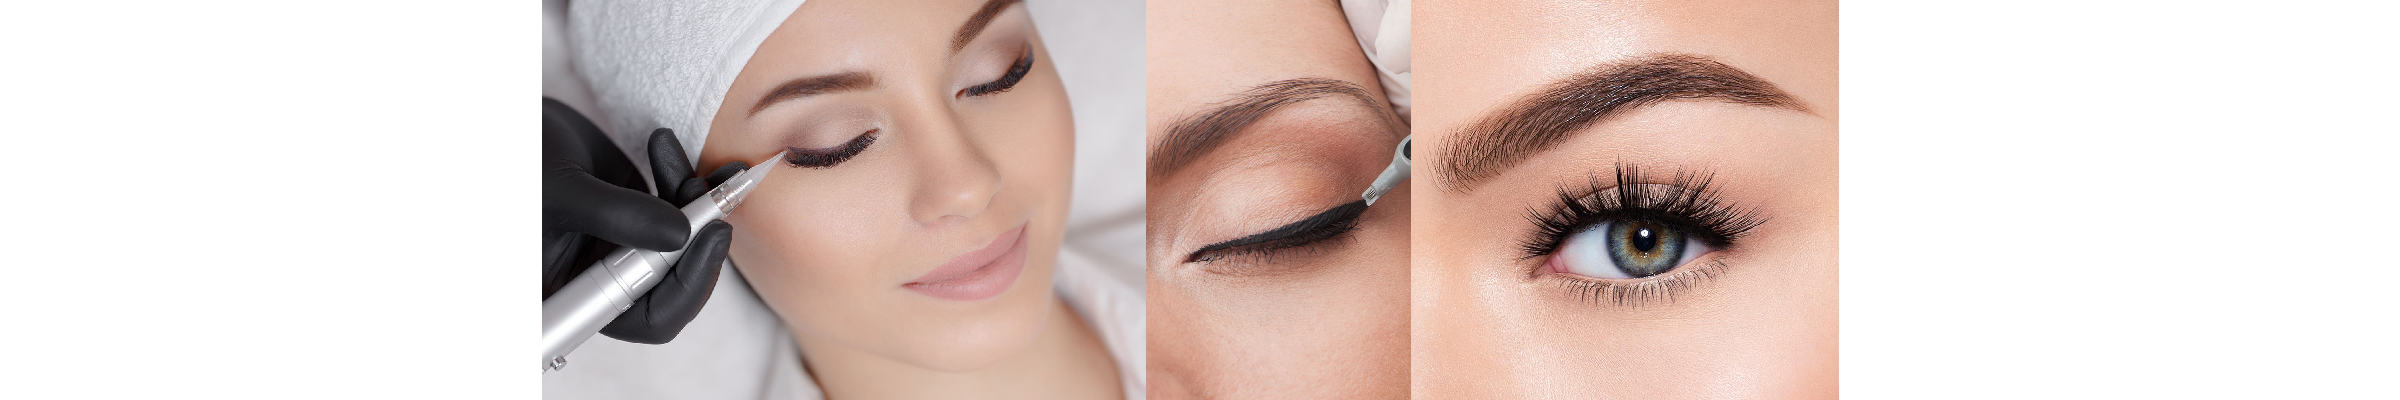 Permanent Eyeliner and Lash Enhancement Liner on Pretty Lady